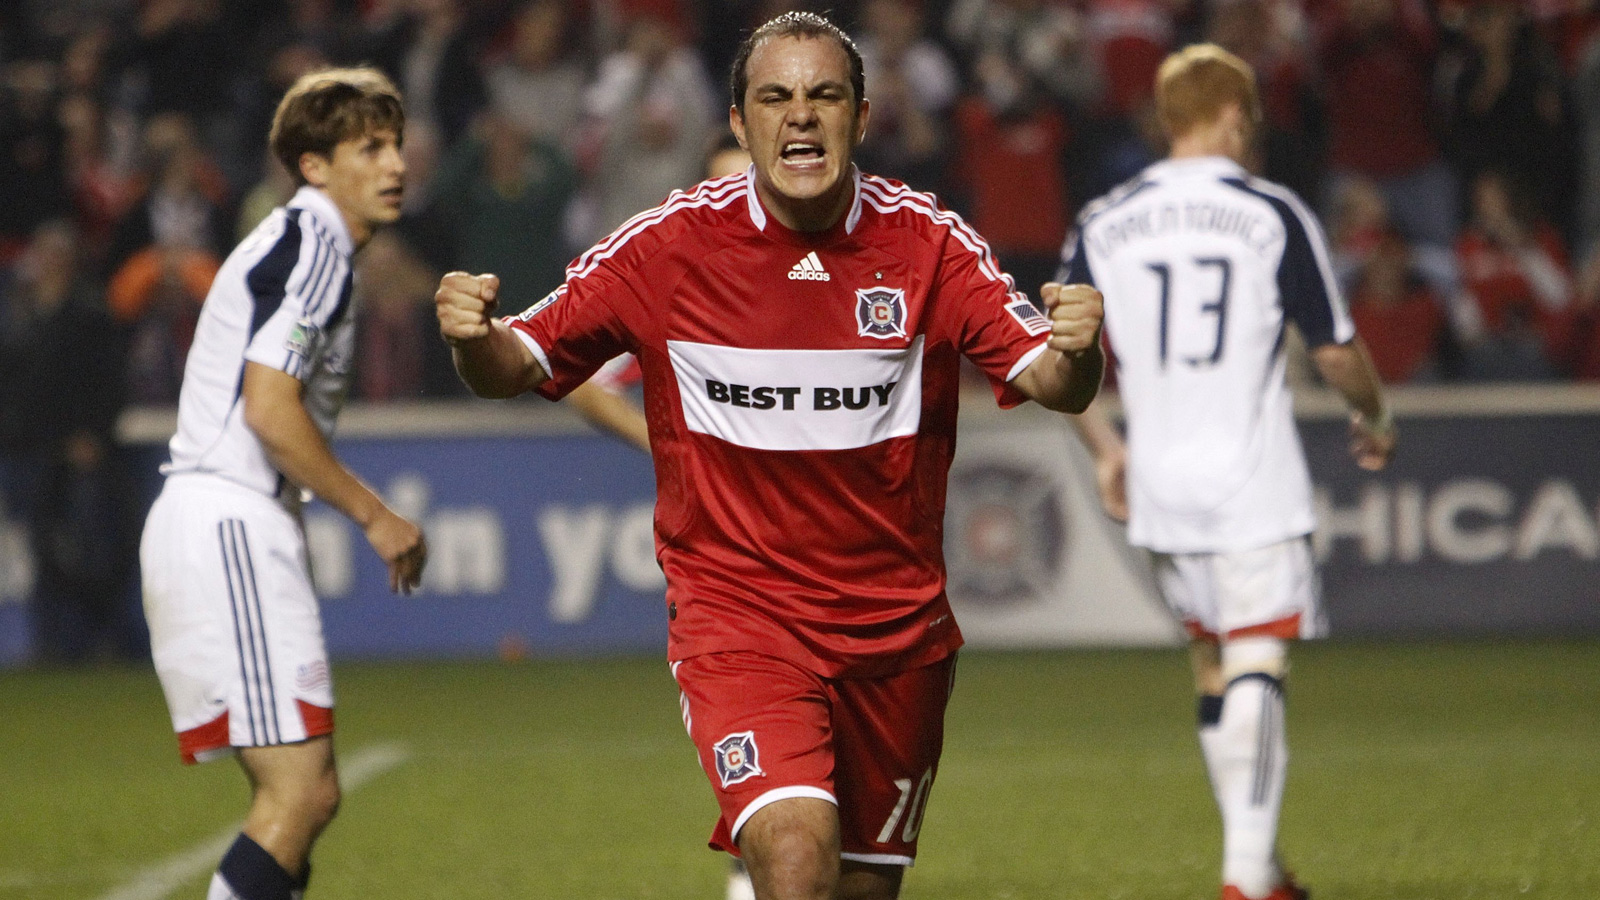 Blanco reacts after a goal in the 2009 Eastern Conference semifinals against the New England Revolution.